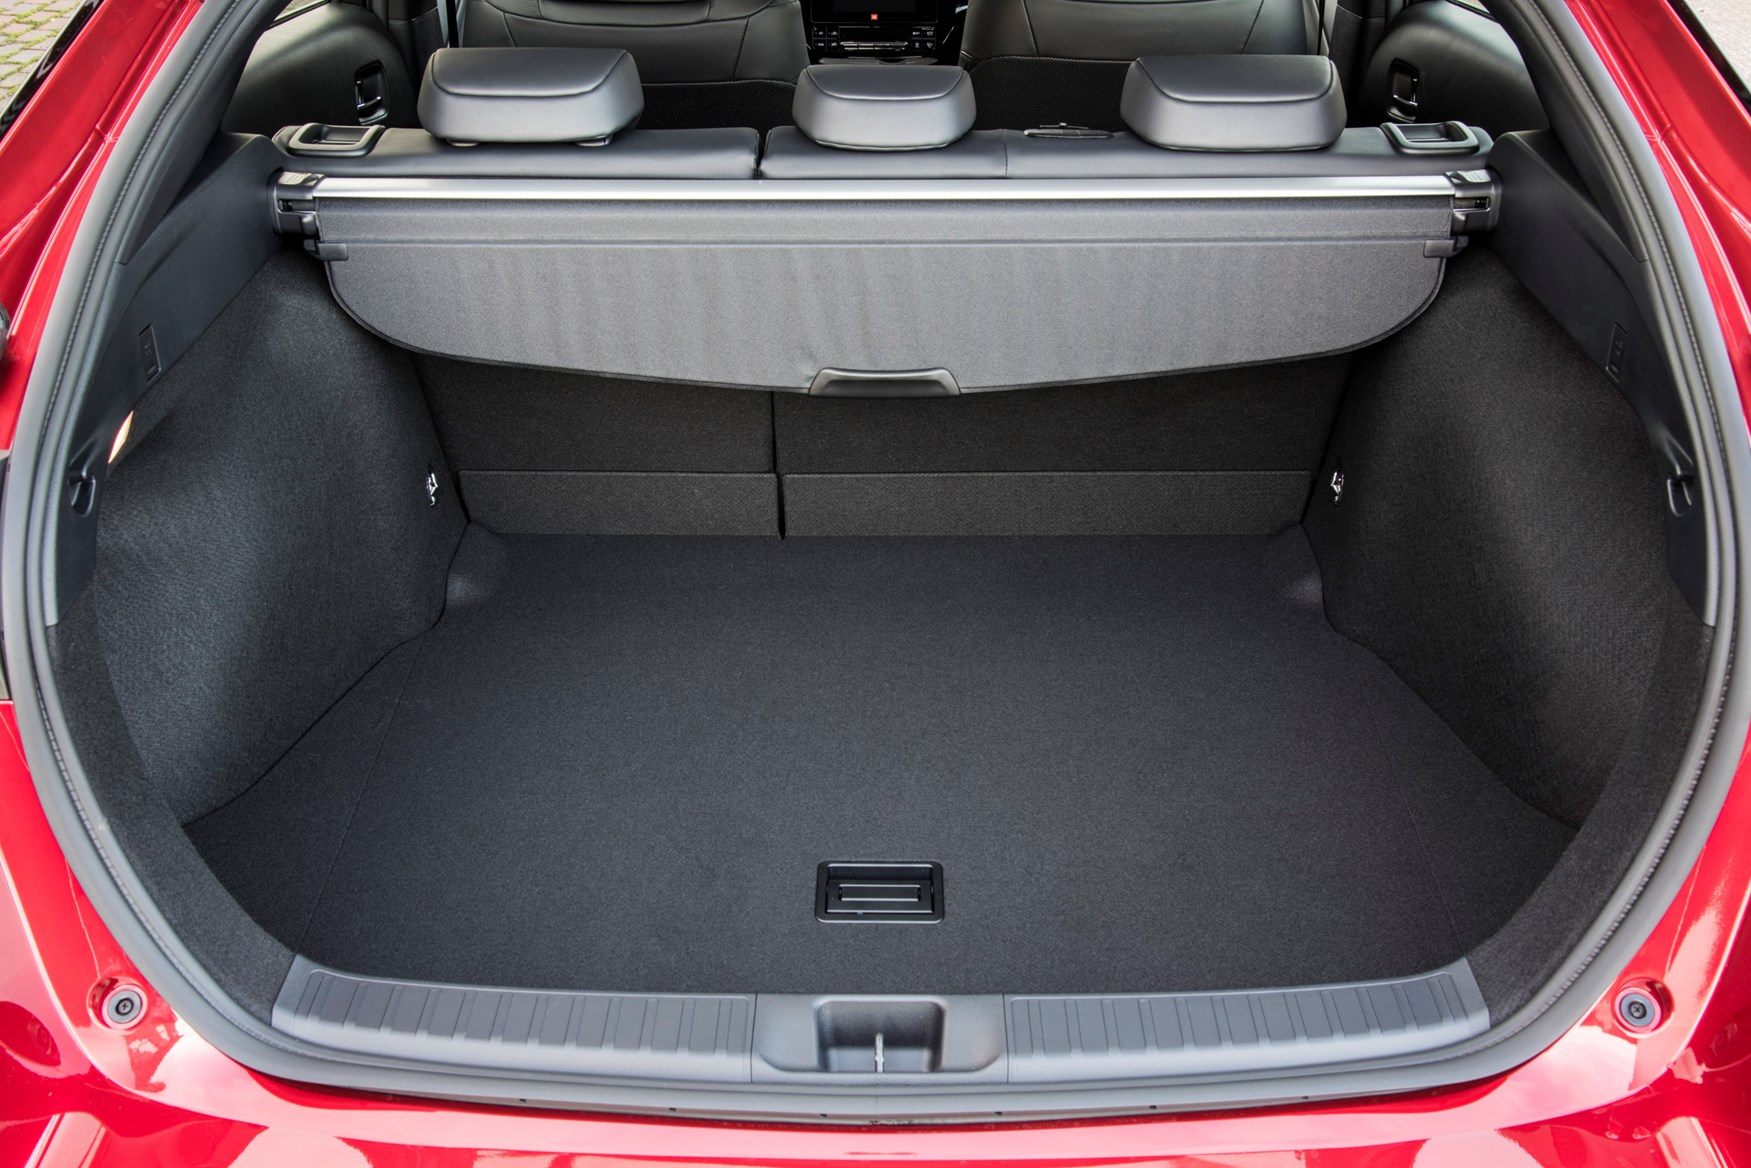 Toyota Prius Hatchback 2015 Features Equipment And